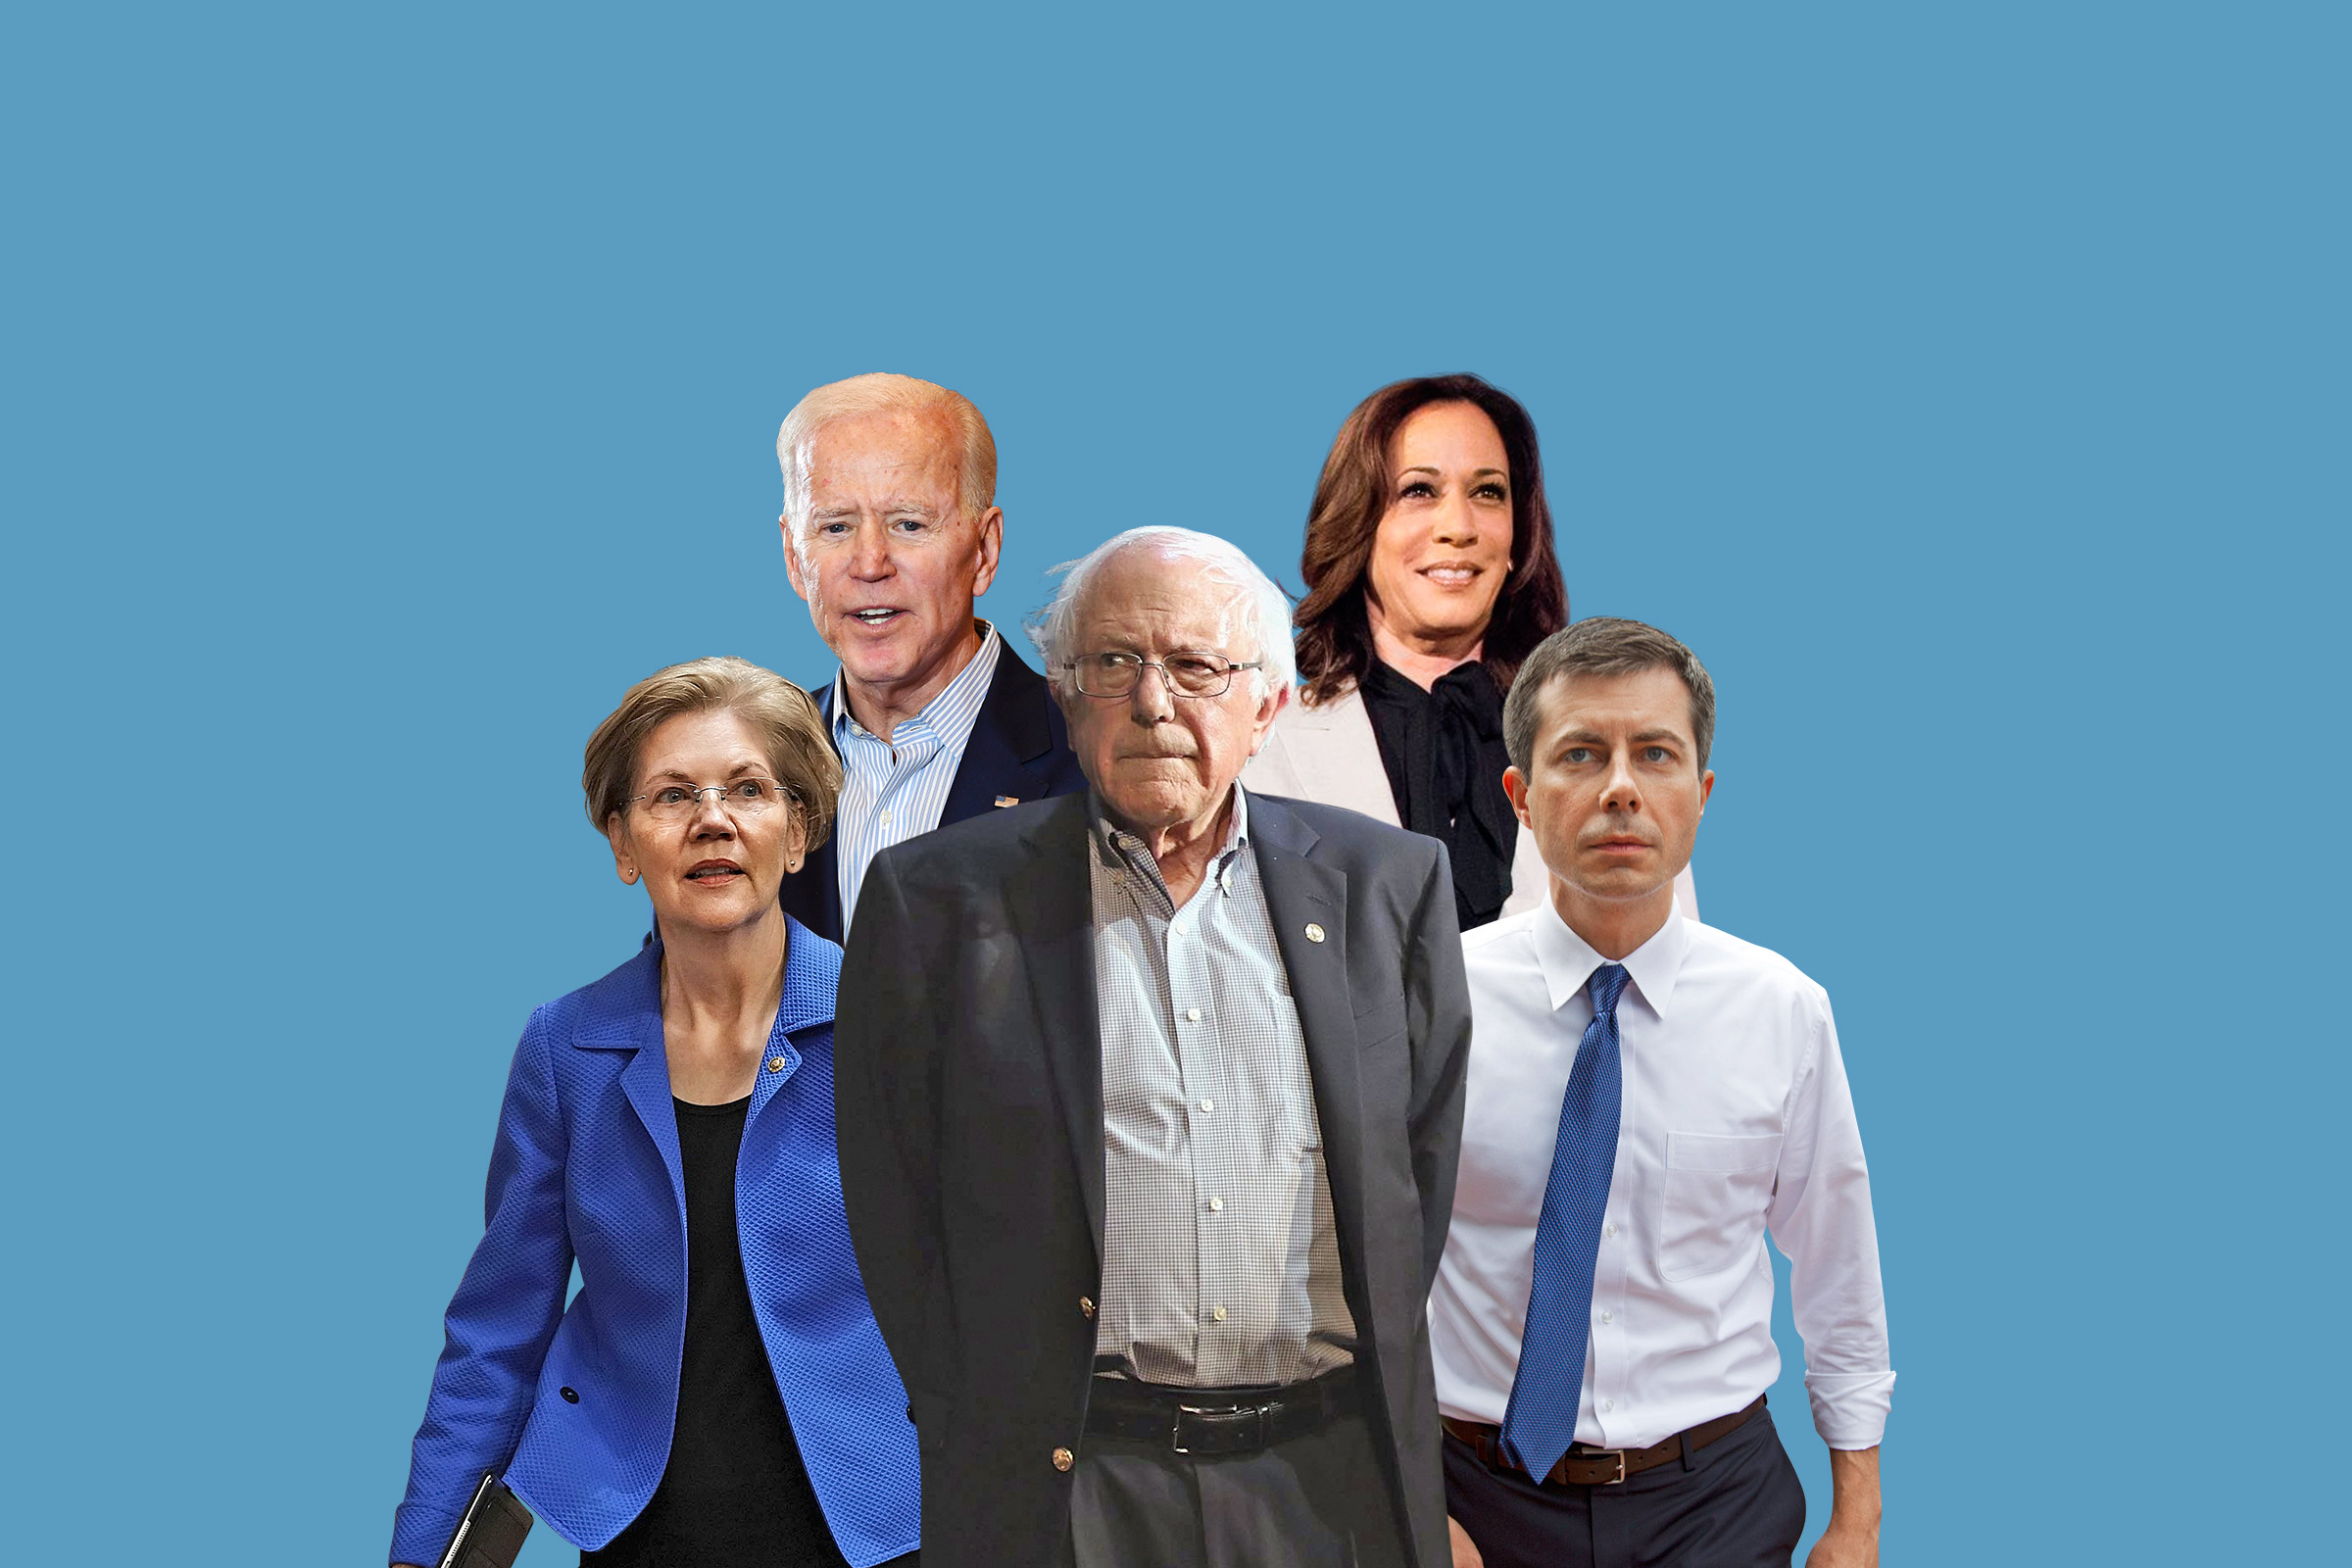 Among the crowded Democratic field are, clockwise from left, Elizabeth Warren, Joe Biden, Kamala Harris, Pete Buttigieg and Bernie Sanders.